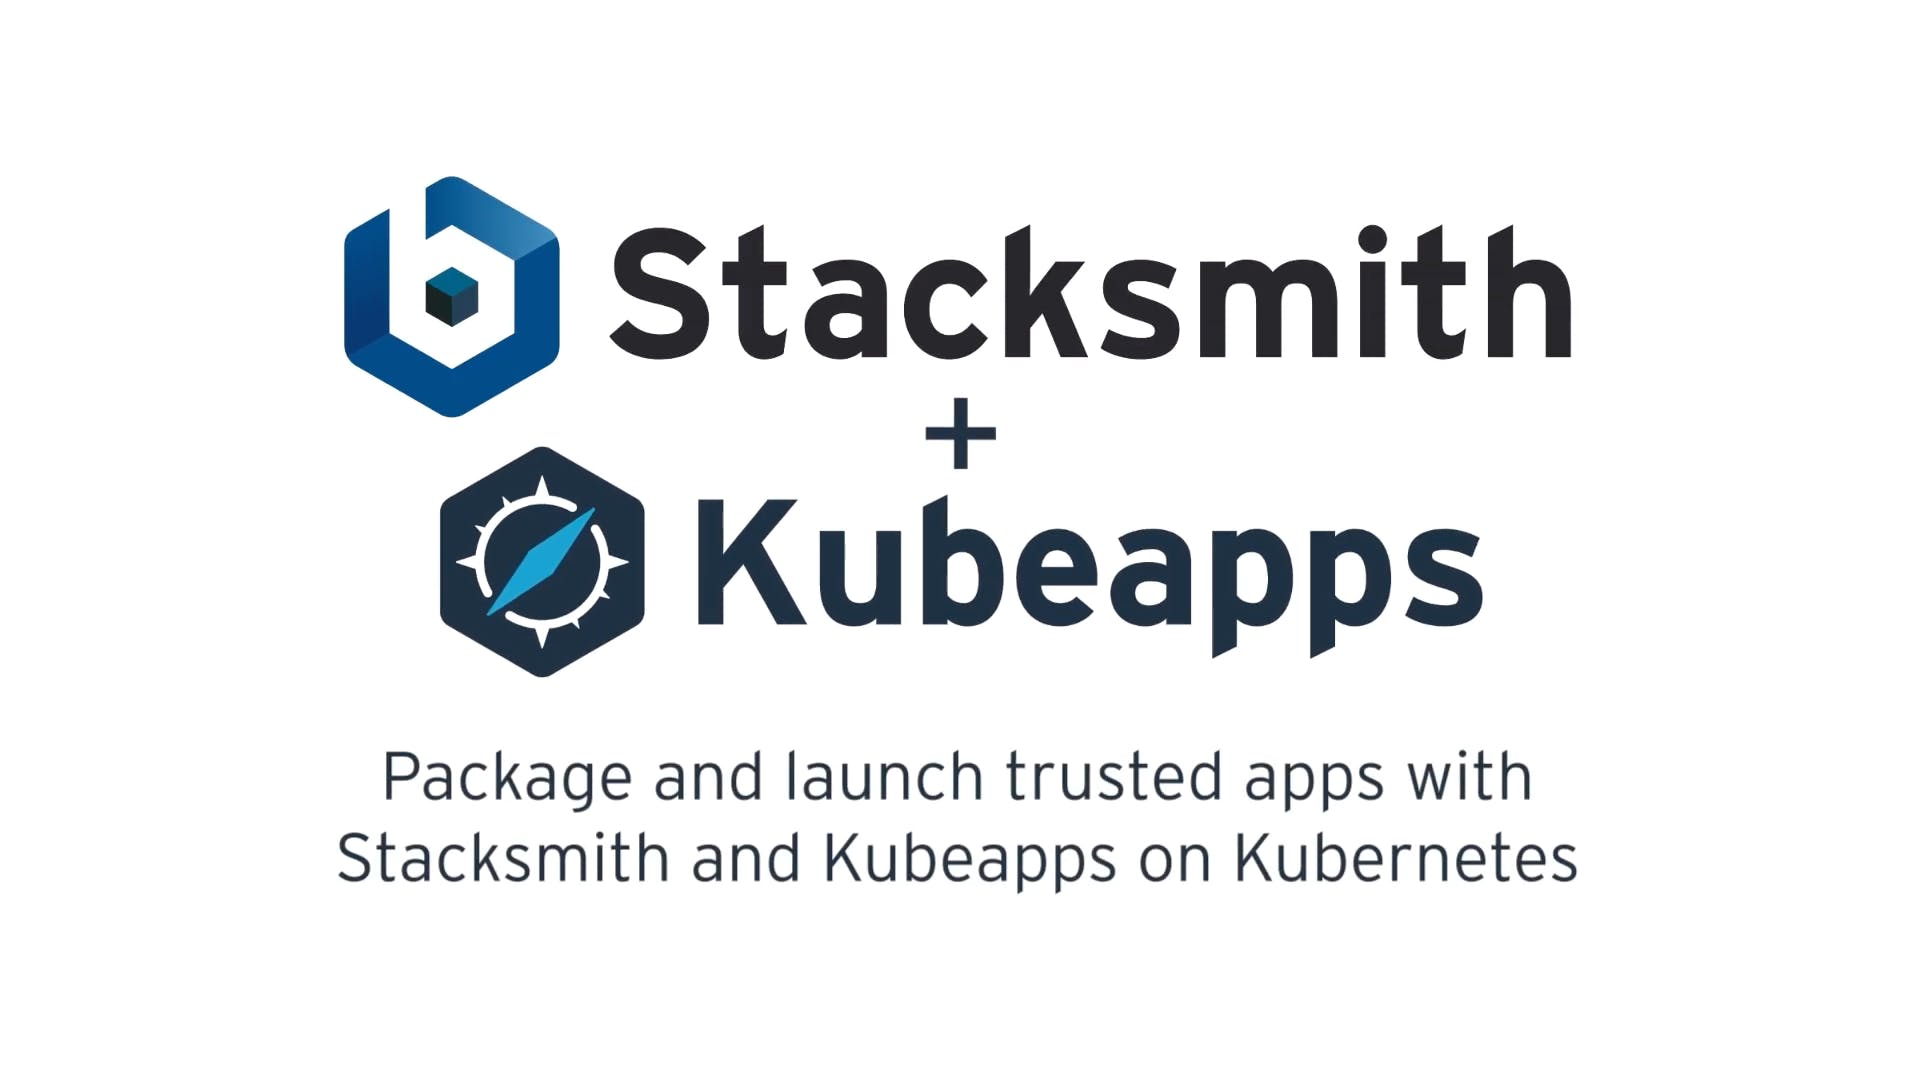 Stacksmith and Kubeapps